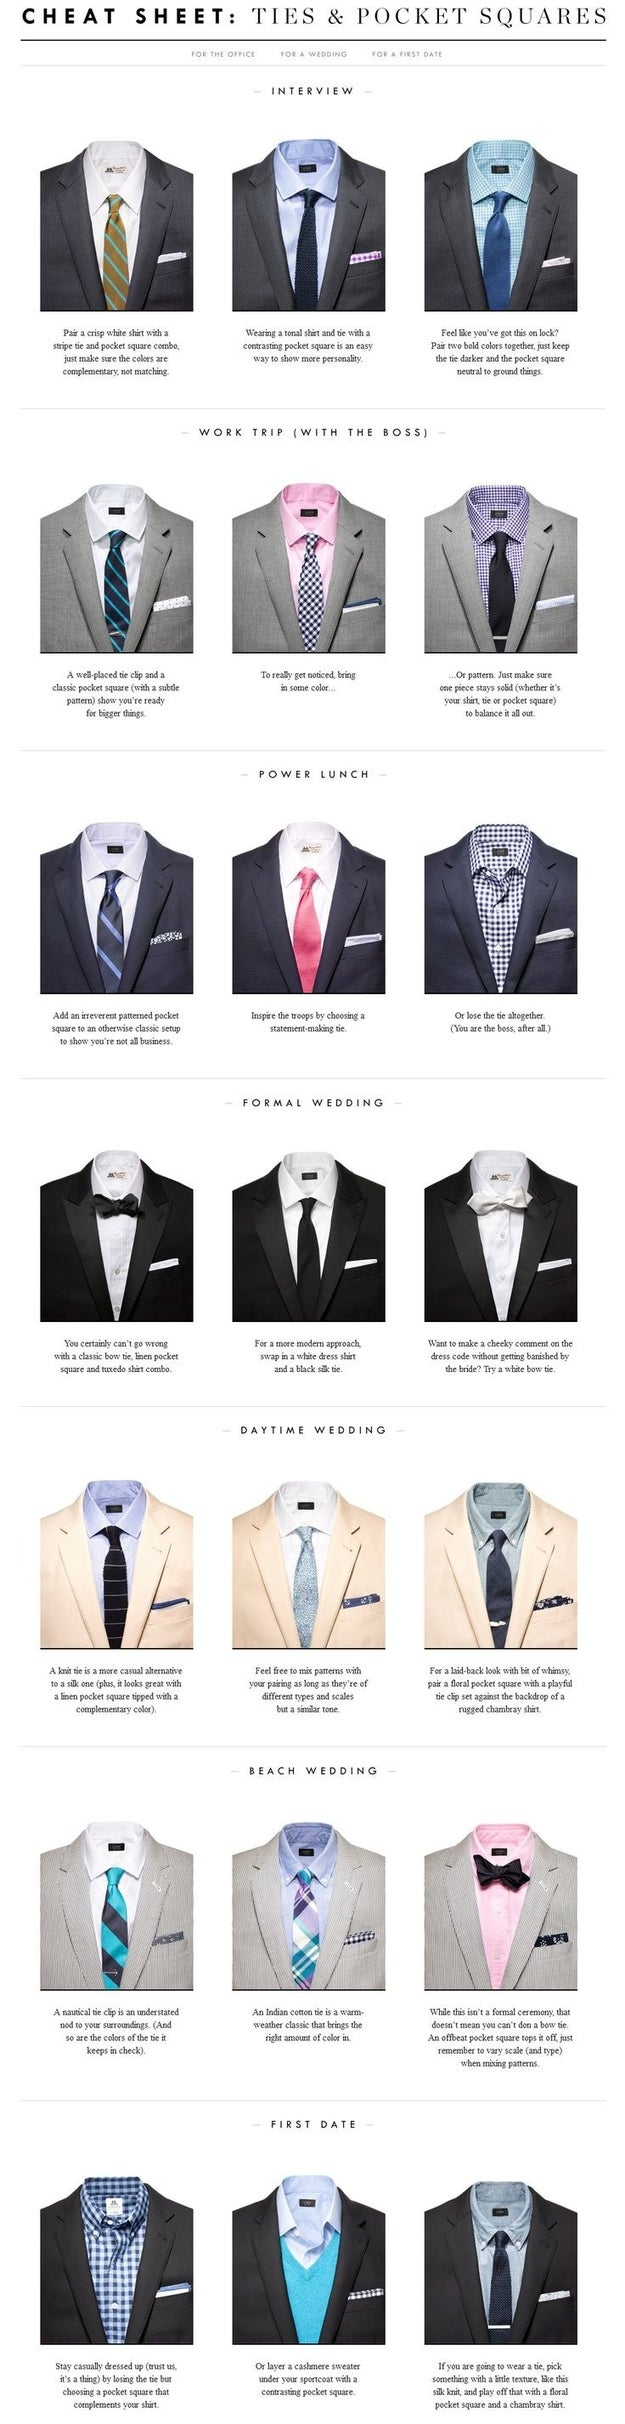 Pair your pocket square with your tie — perfectly.